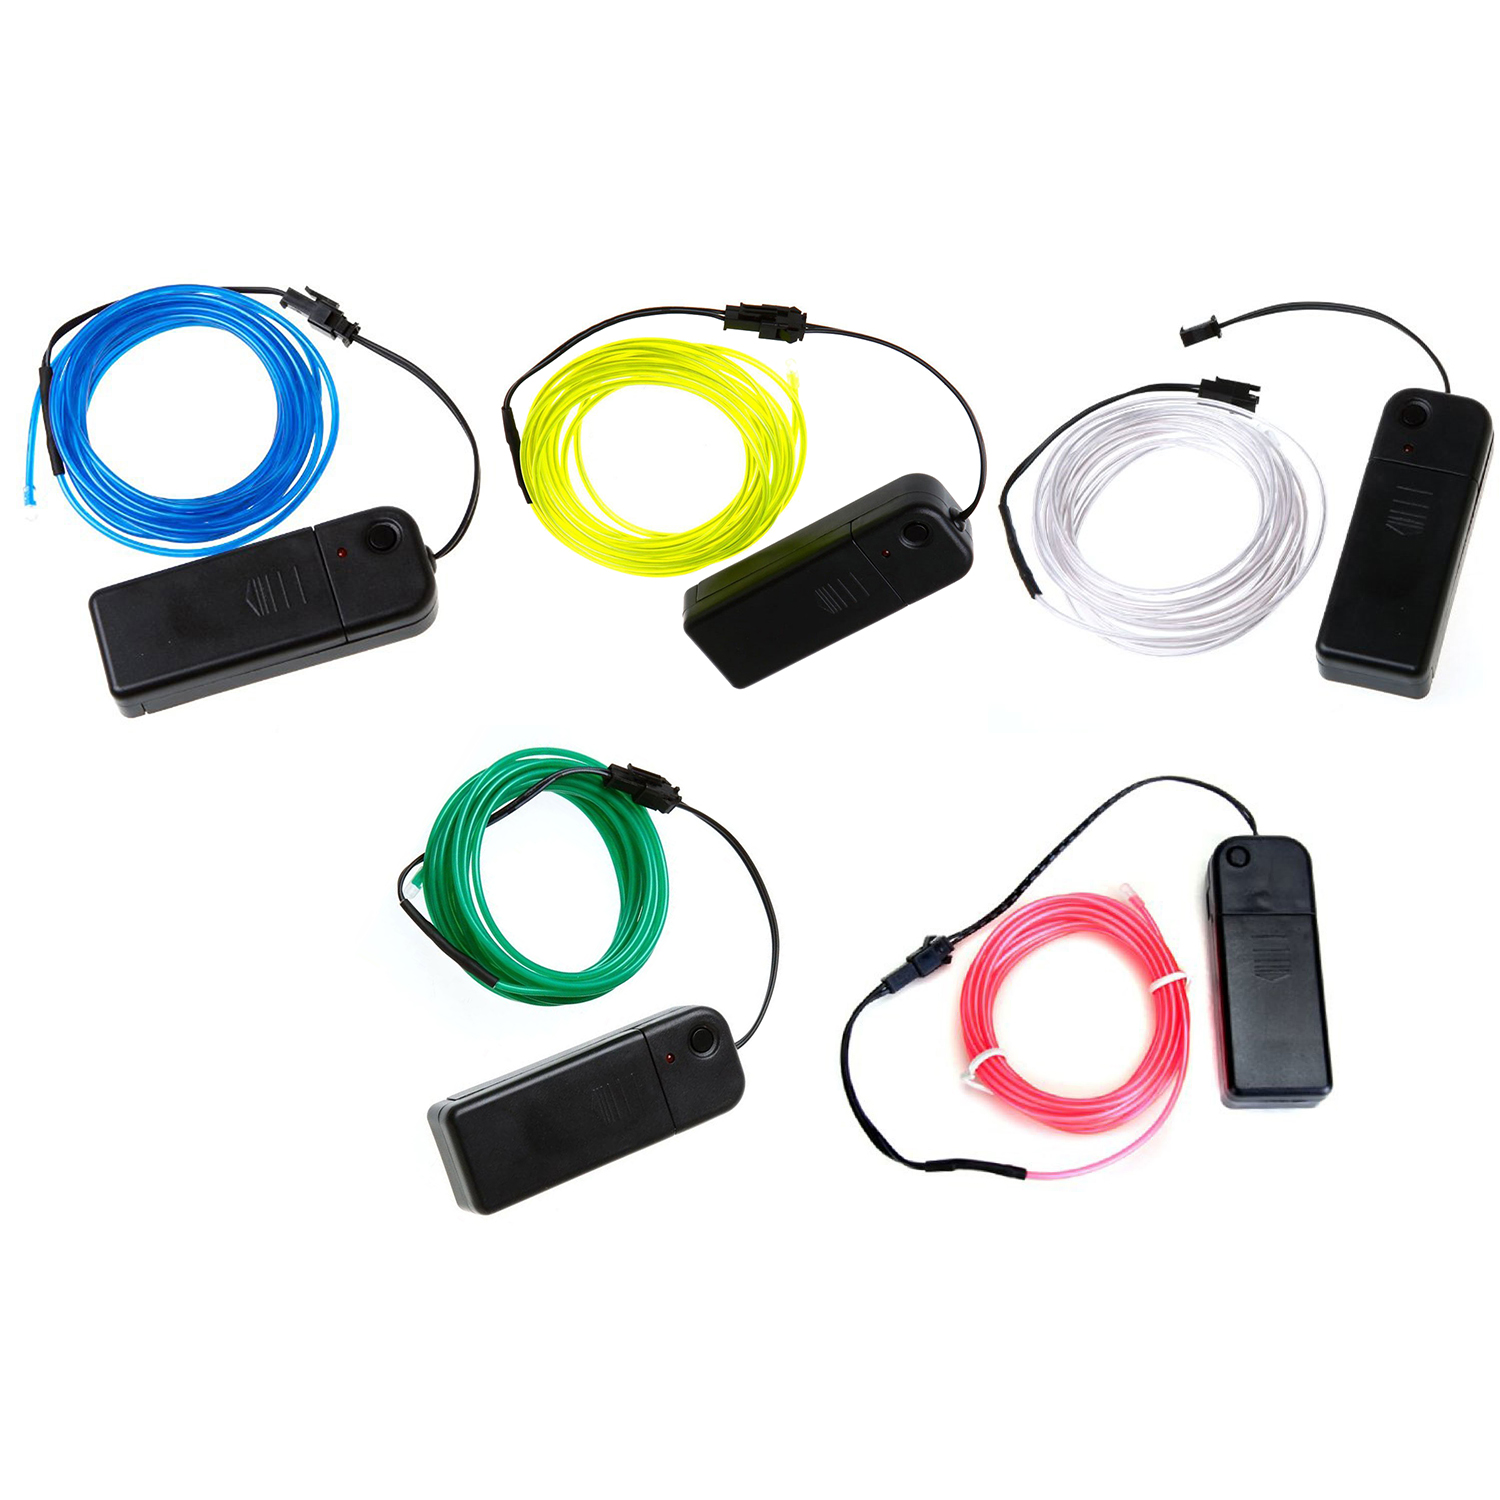 Neon glowing electroluminescent wire el with